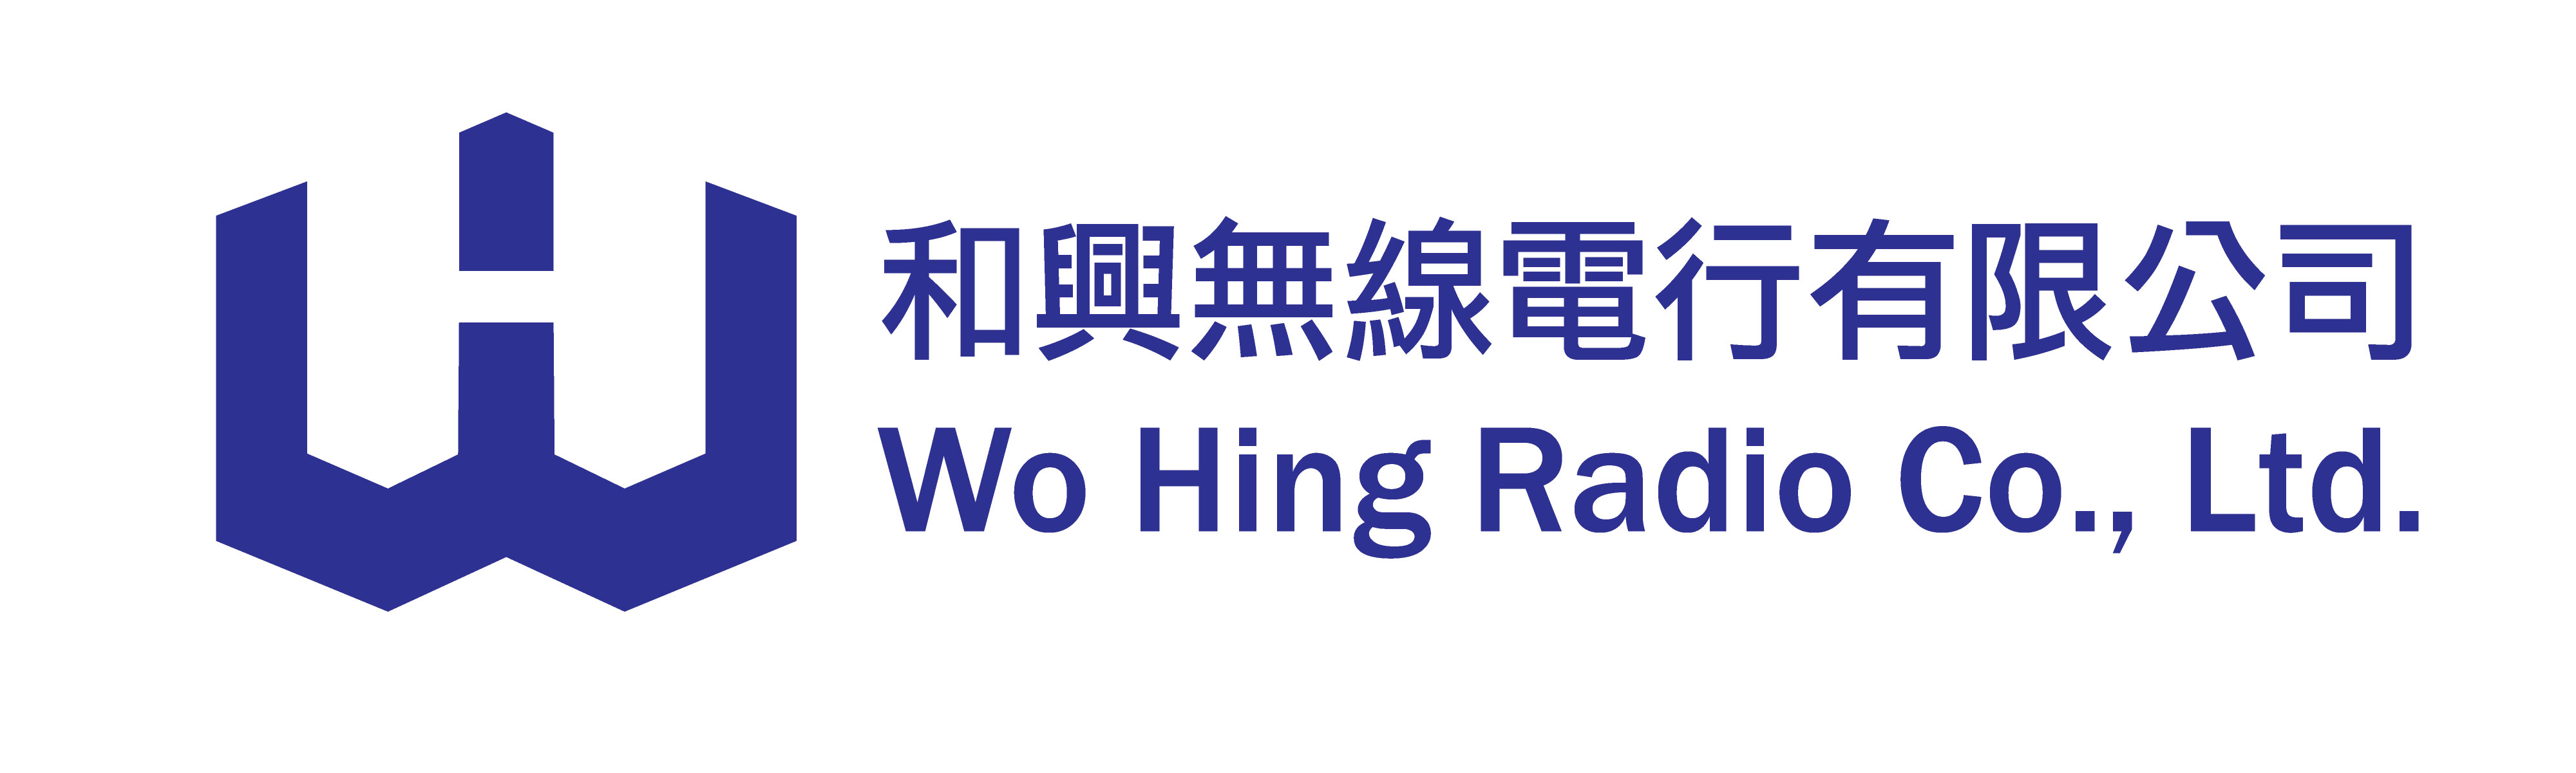 Wo Hing Radio Co., Ltd.